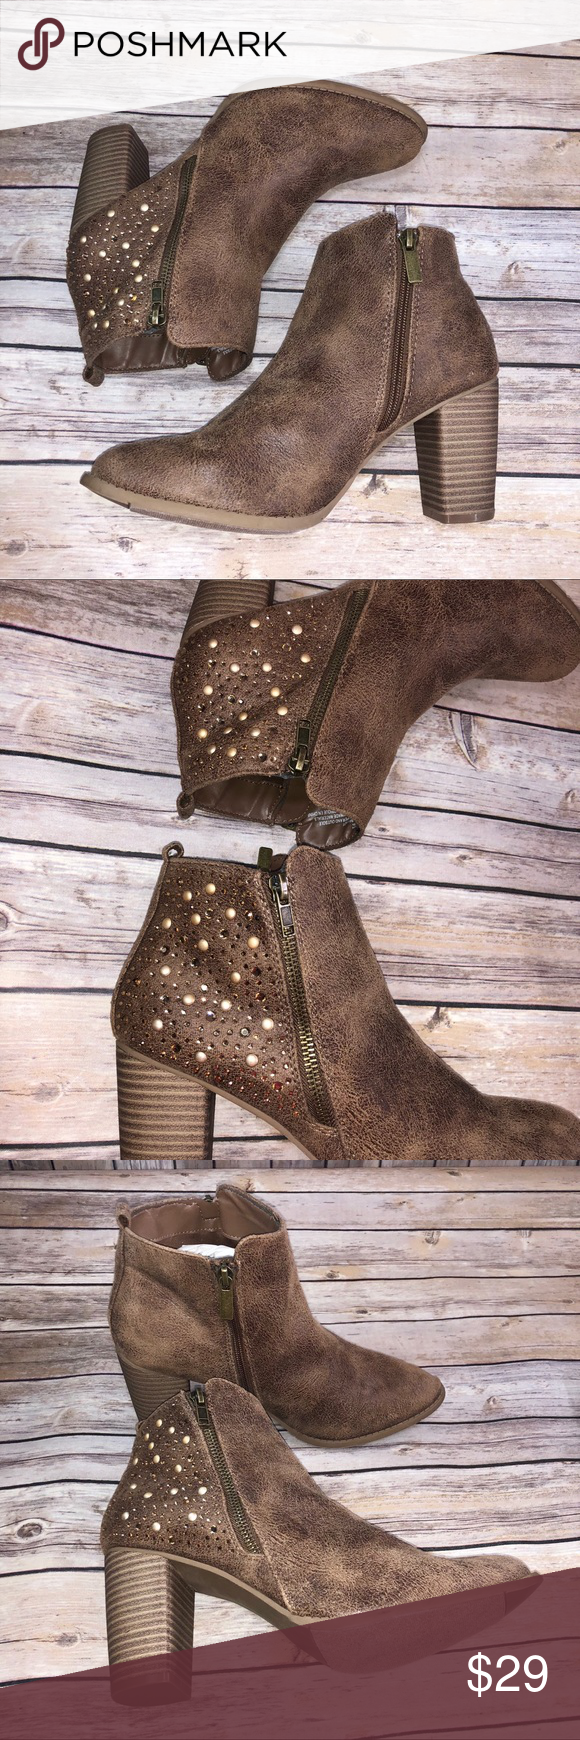 6fed28ce8e5c7 Maurices embellished heel zip up bootie Maurices brandy faux suede heeled  bootie•• -GUC -minimal wear signs -gently pre loved -gorgeous shimmering ...